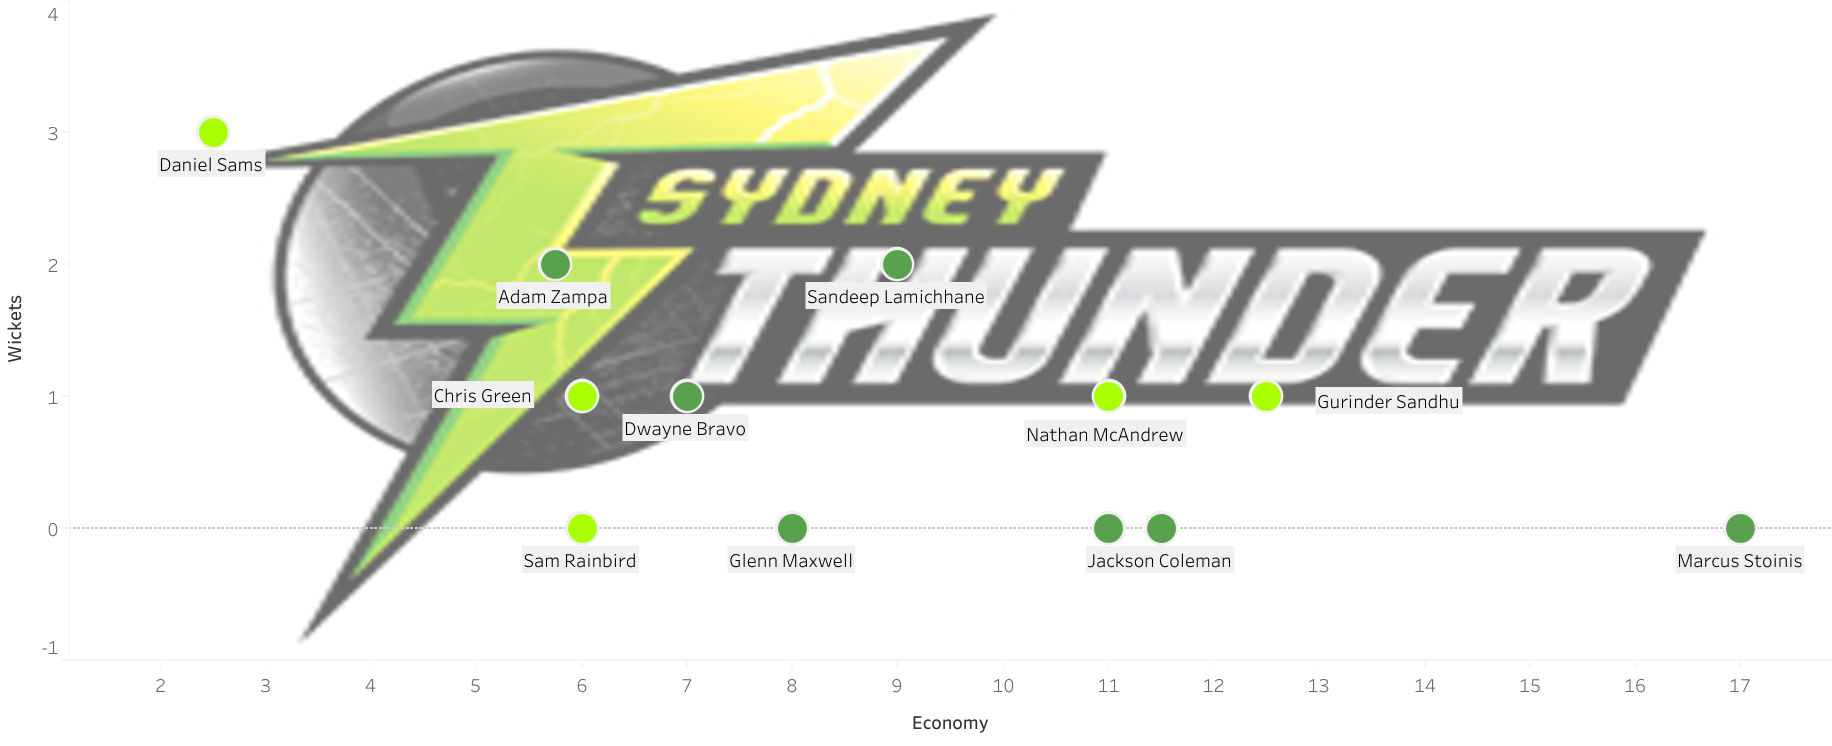 Ten years of the Big Bash League: Analysing the best bowling performances - part two